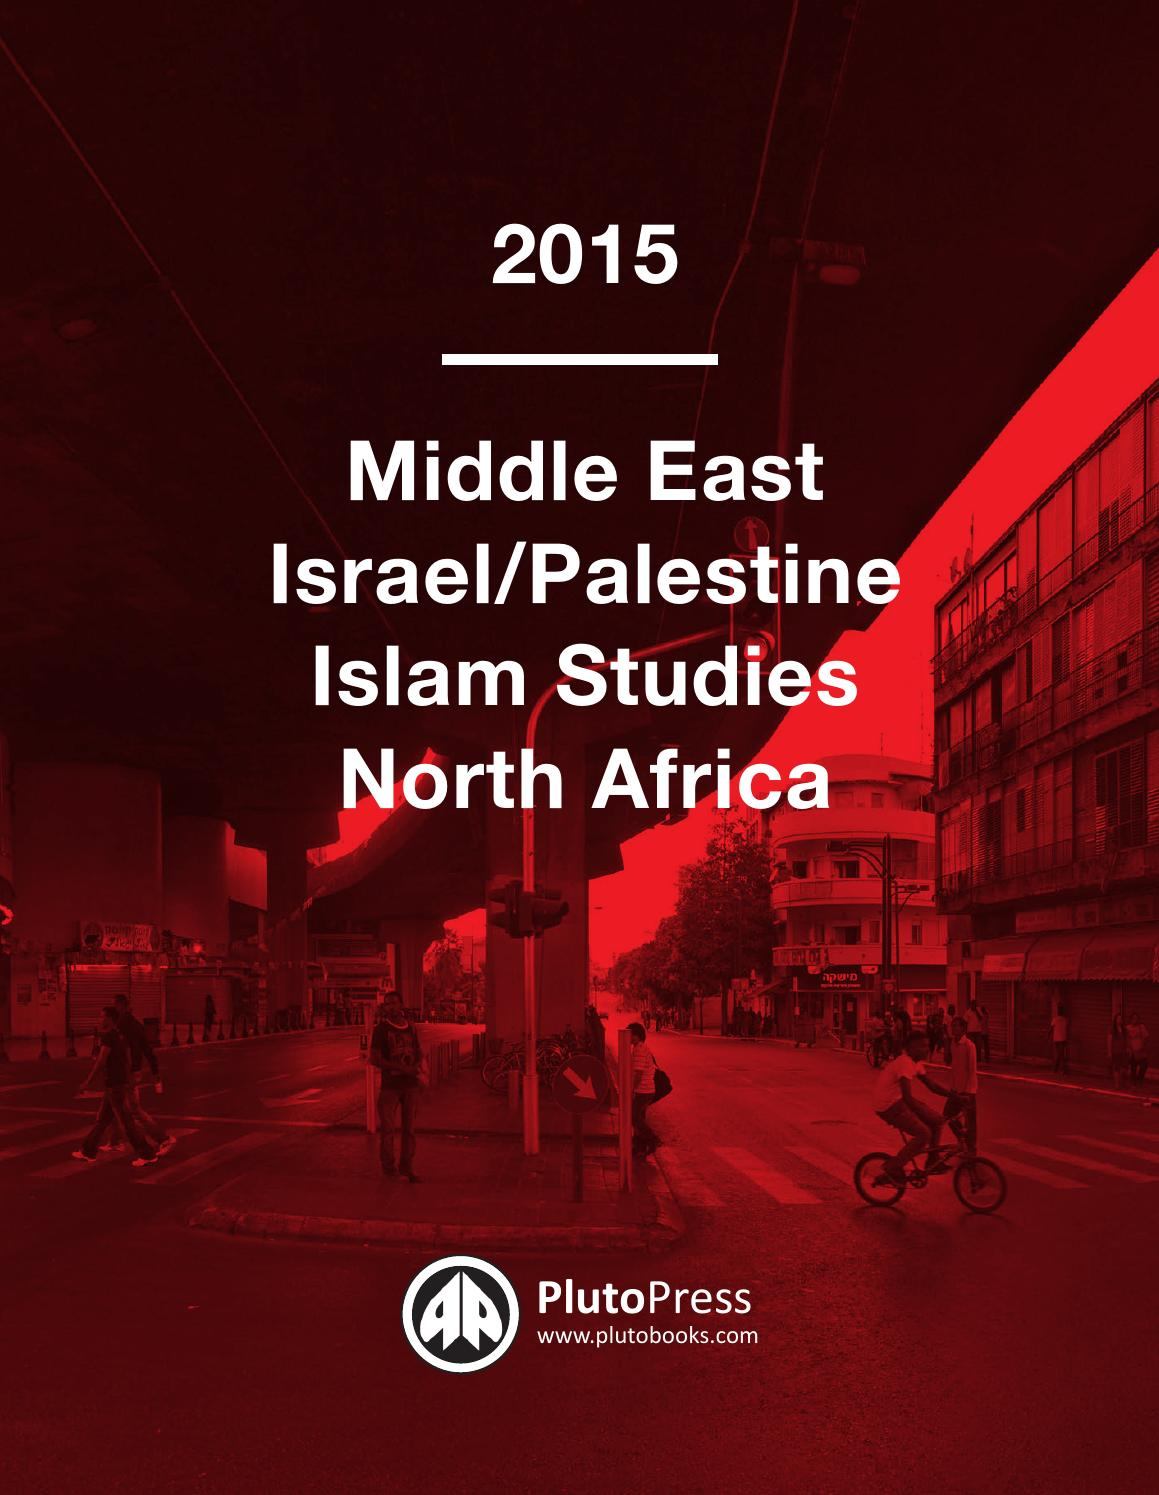 Middle East Catalogue 2015